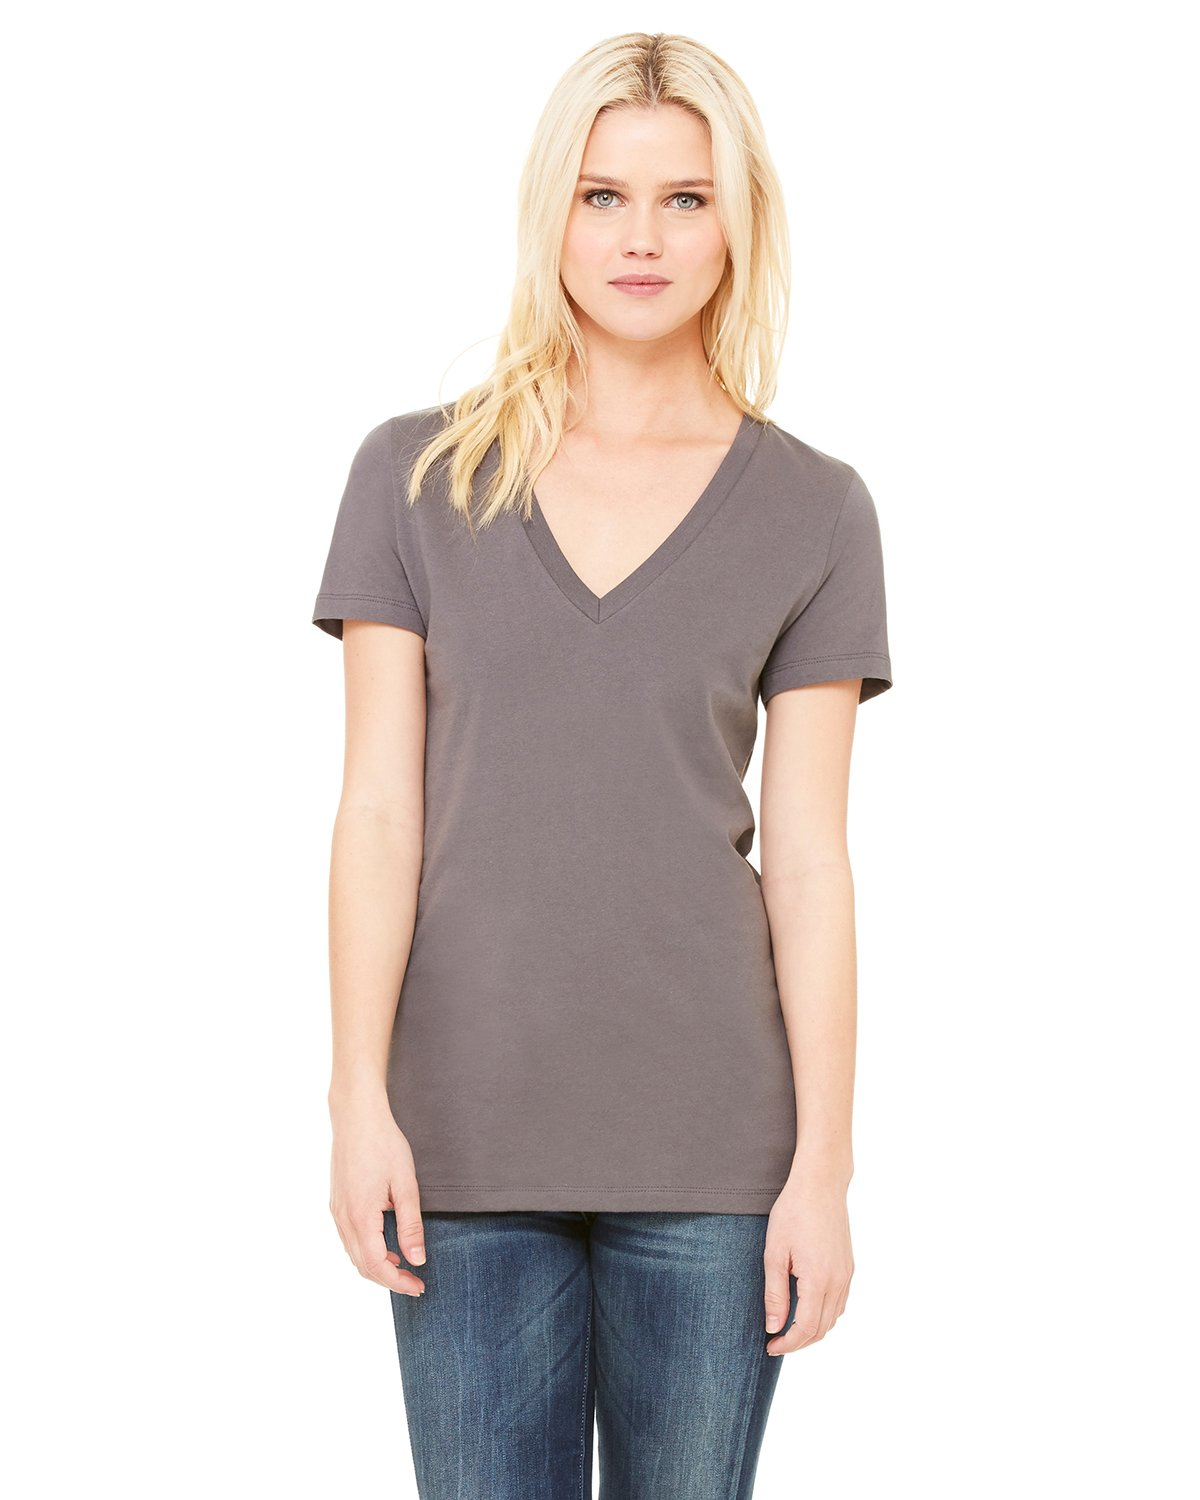 Bella + Canvas - B6035 - Ladies' Jersey Short-Sleeve Deep V-Neck T-Shirt